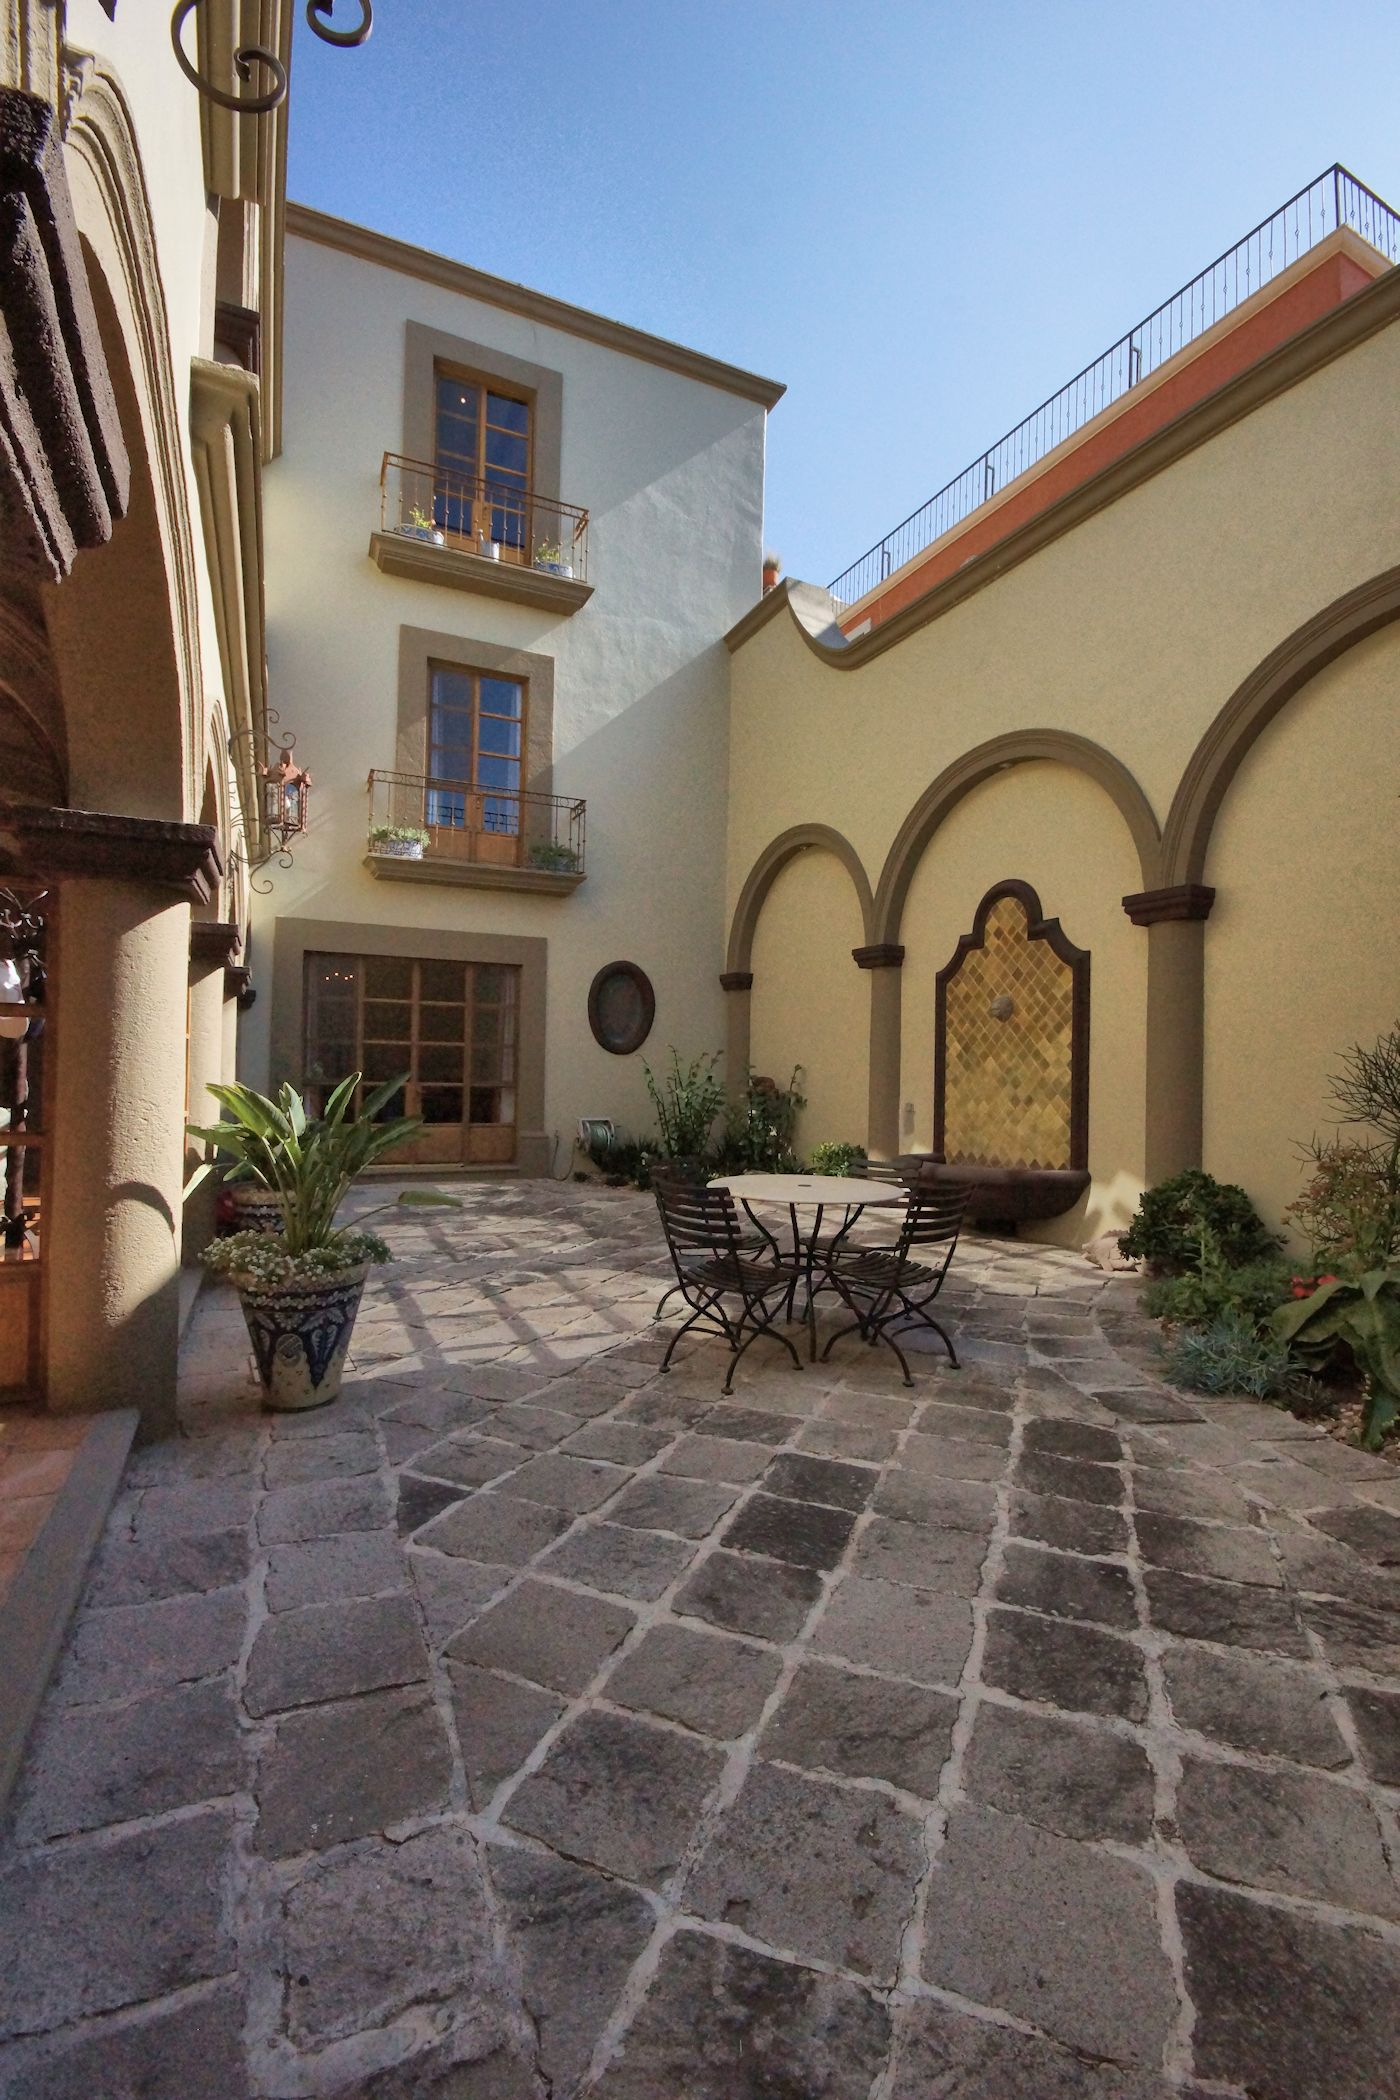 Single Family Home for Sale at Caracol Caracol, San Miguel De Allende, Guanajuato 37769 Mexico